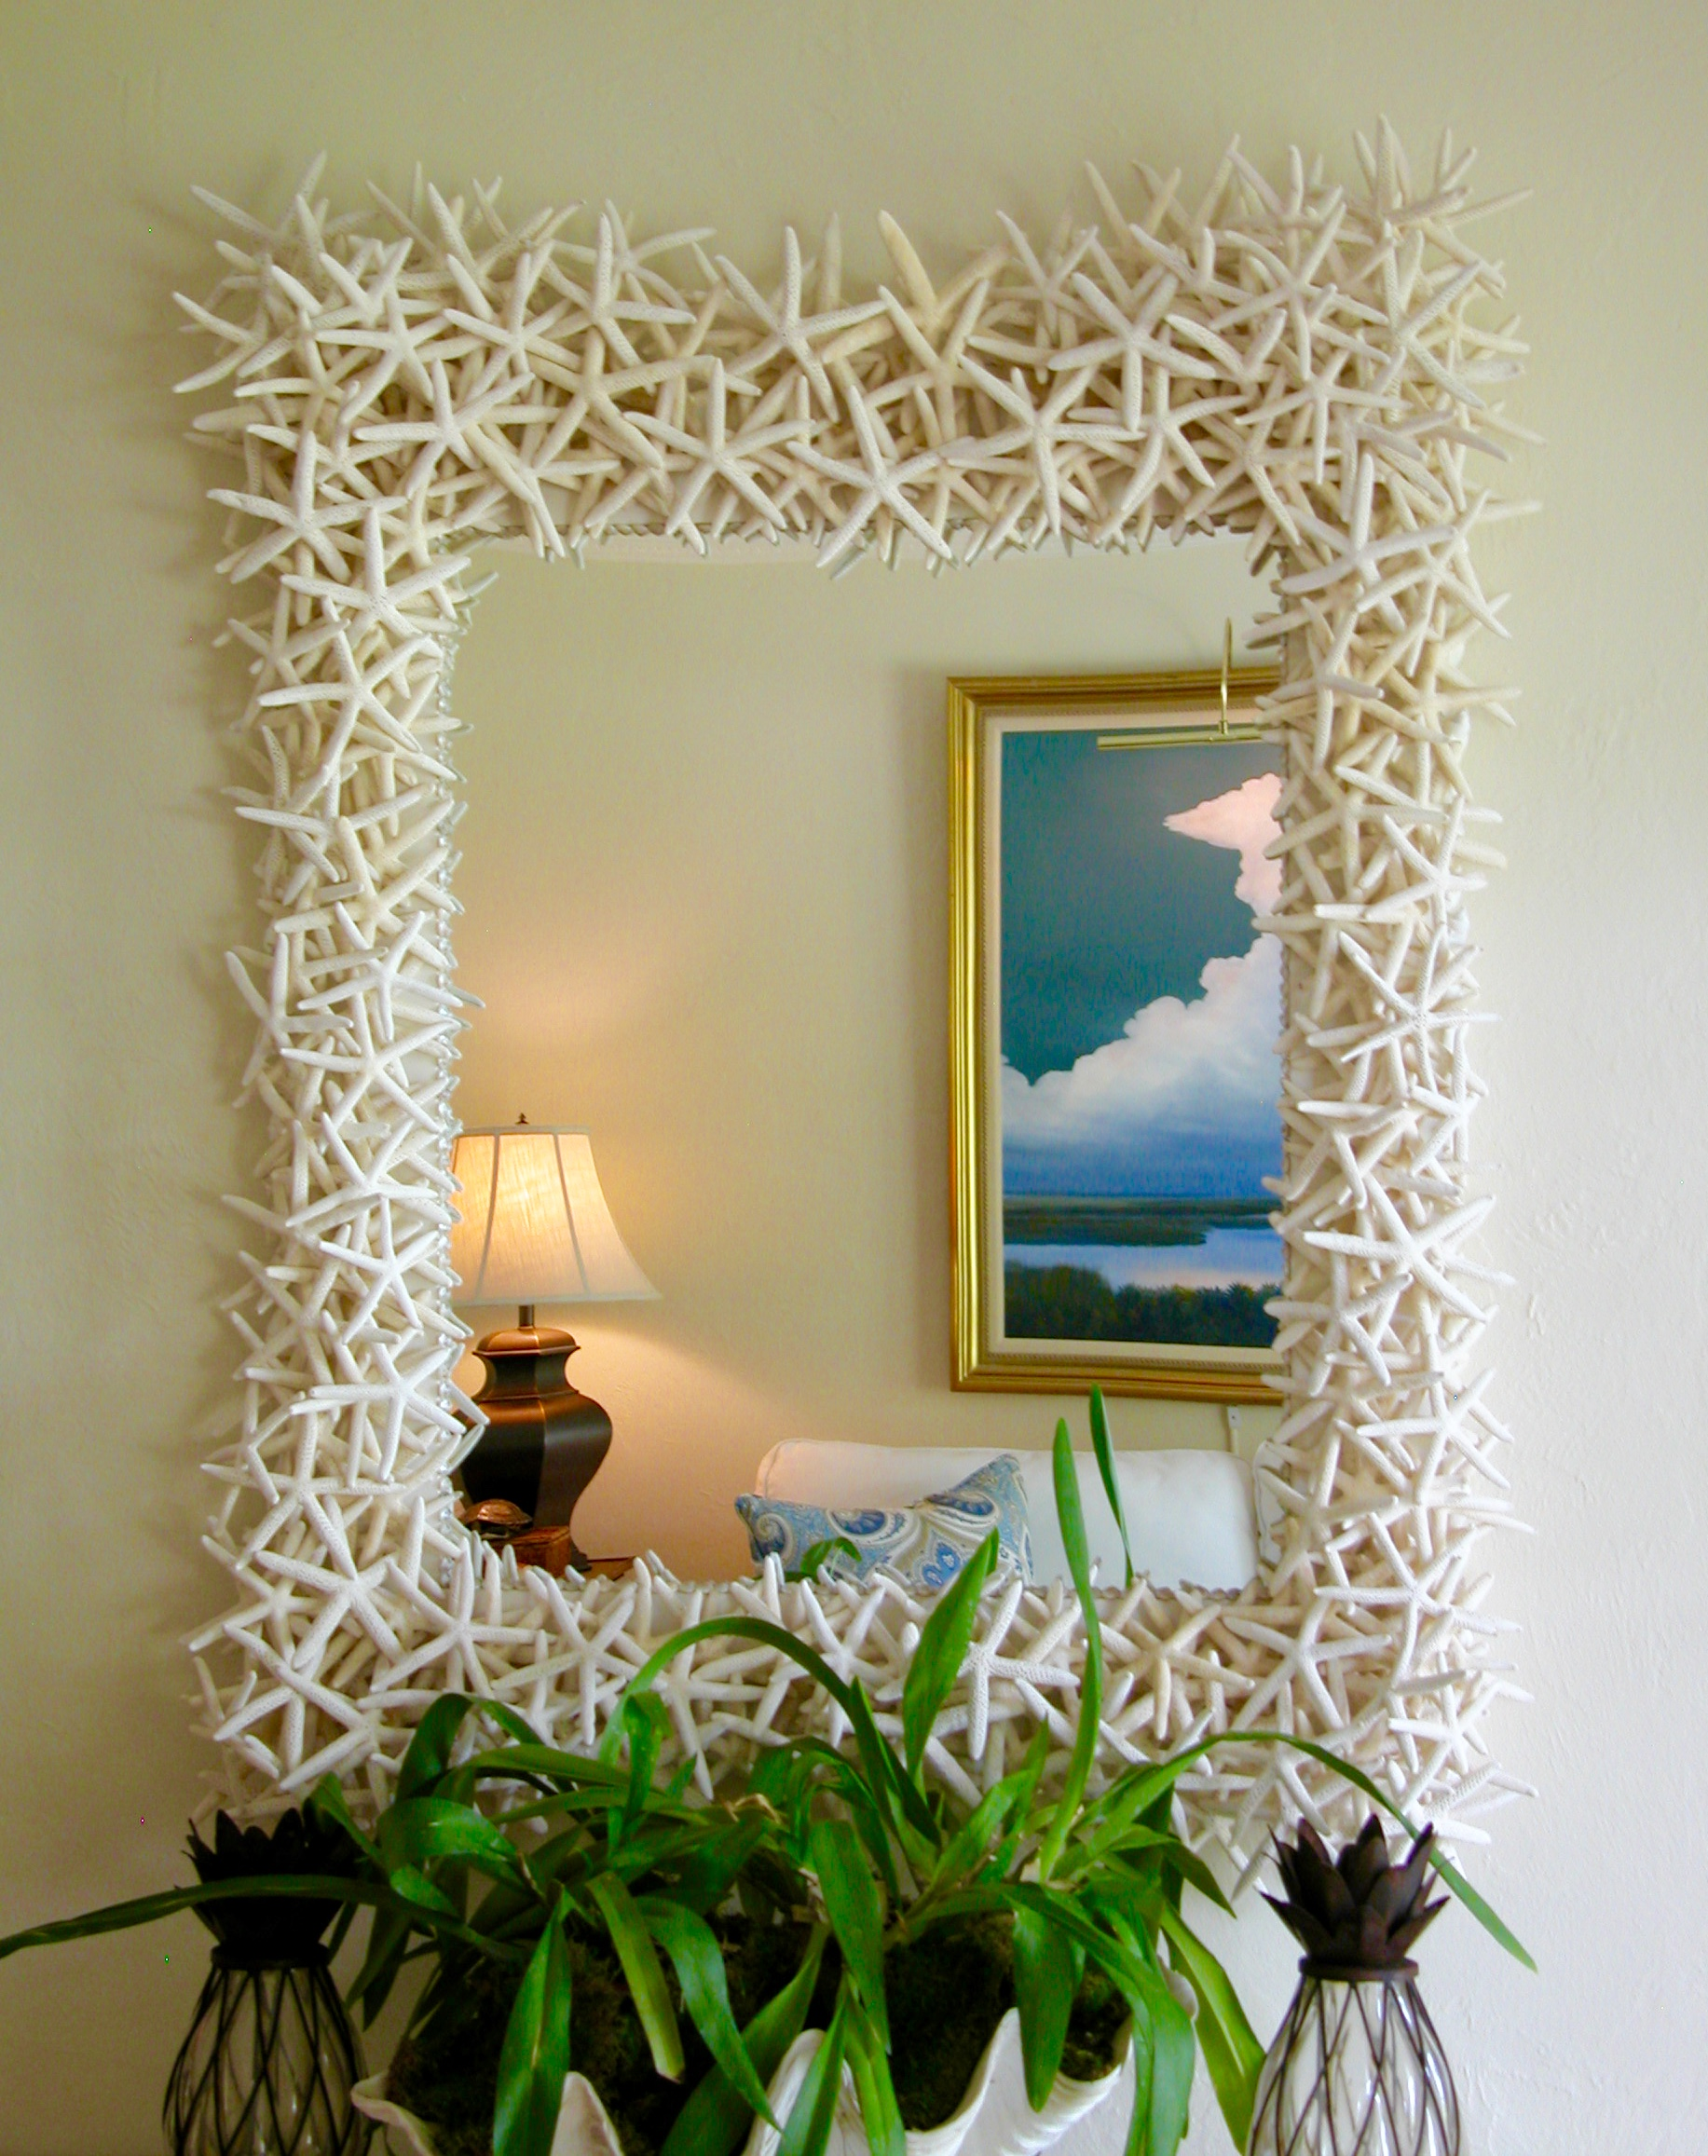 A mirror made with lots and lots of white starfish hangs on a wall with plant on a table under it.